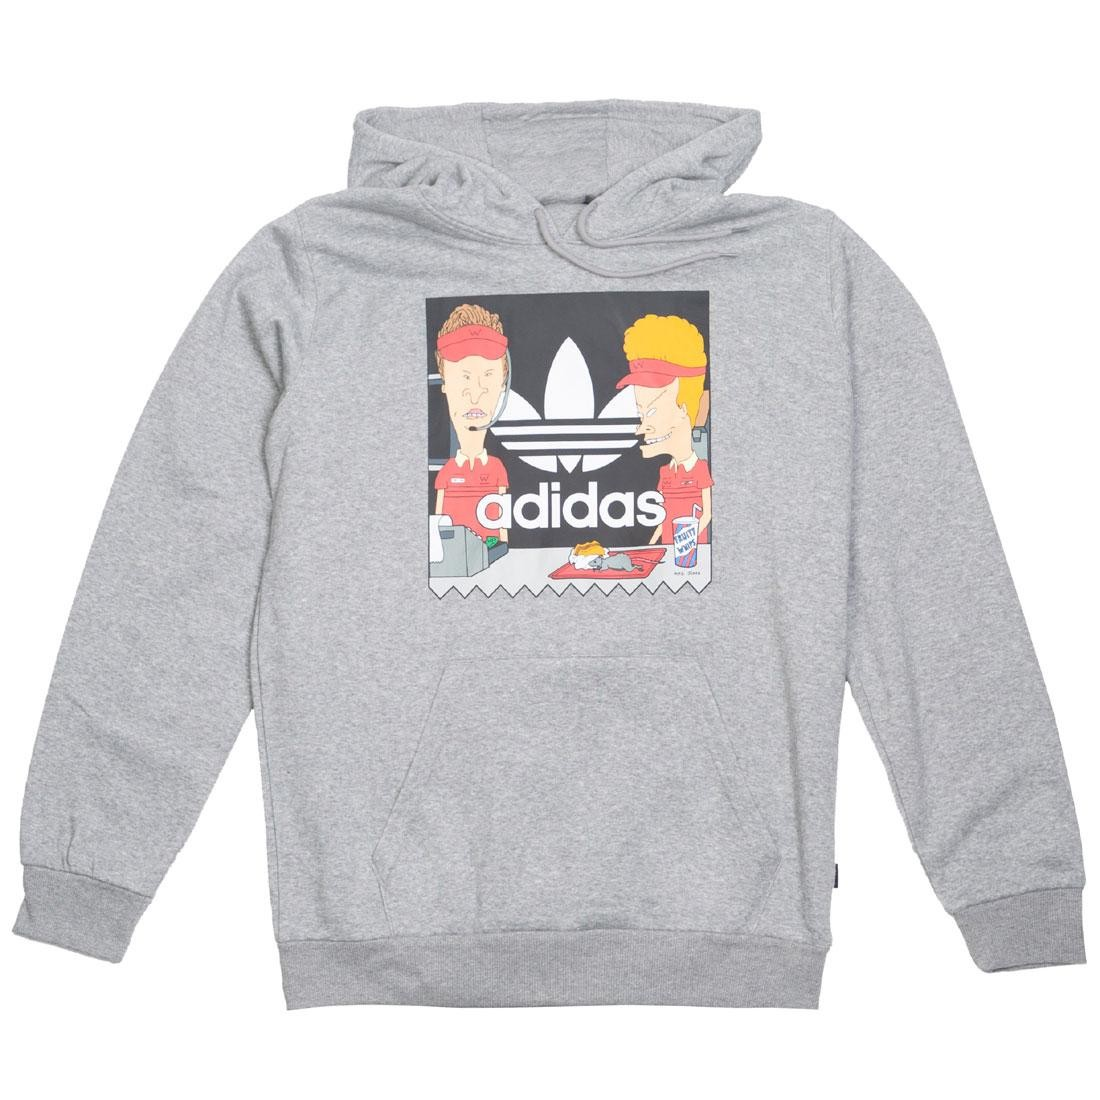 competitive price 07449 8d1be Adidas Men Beavis and Butthead Hoodie (gray / core heather)